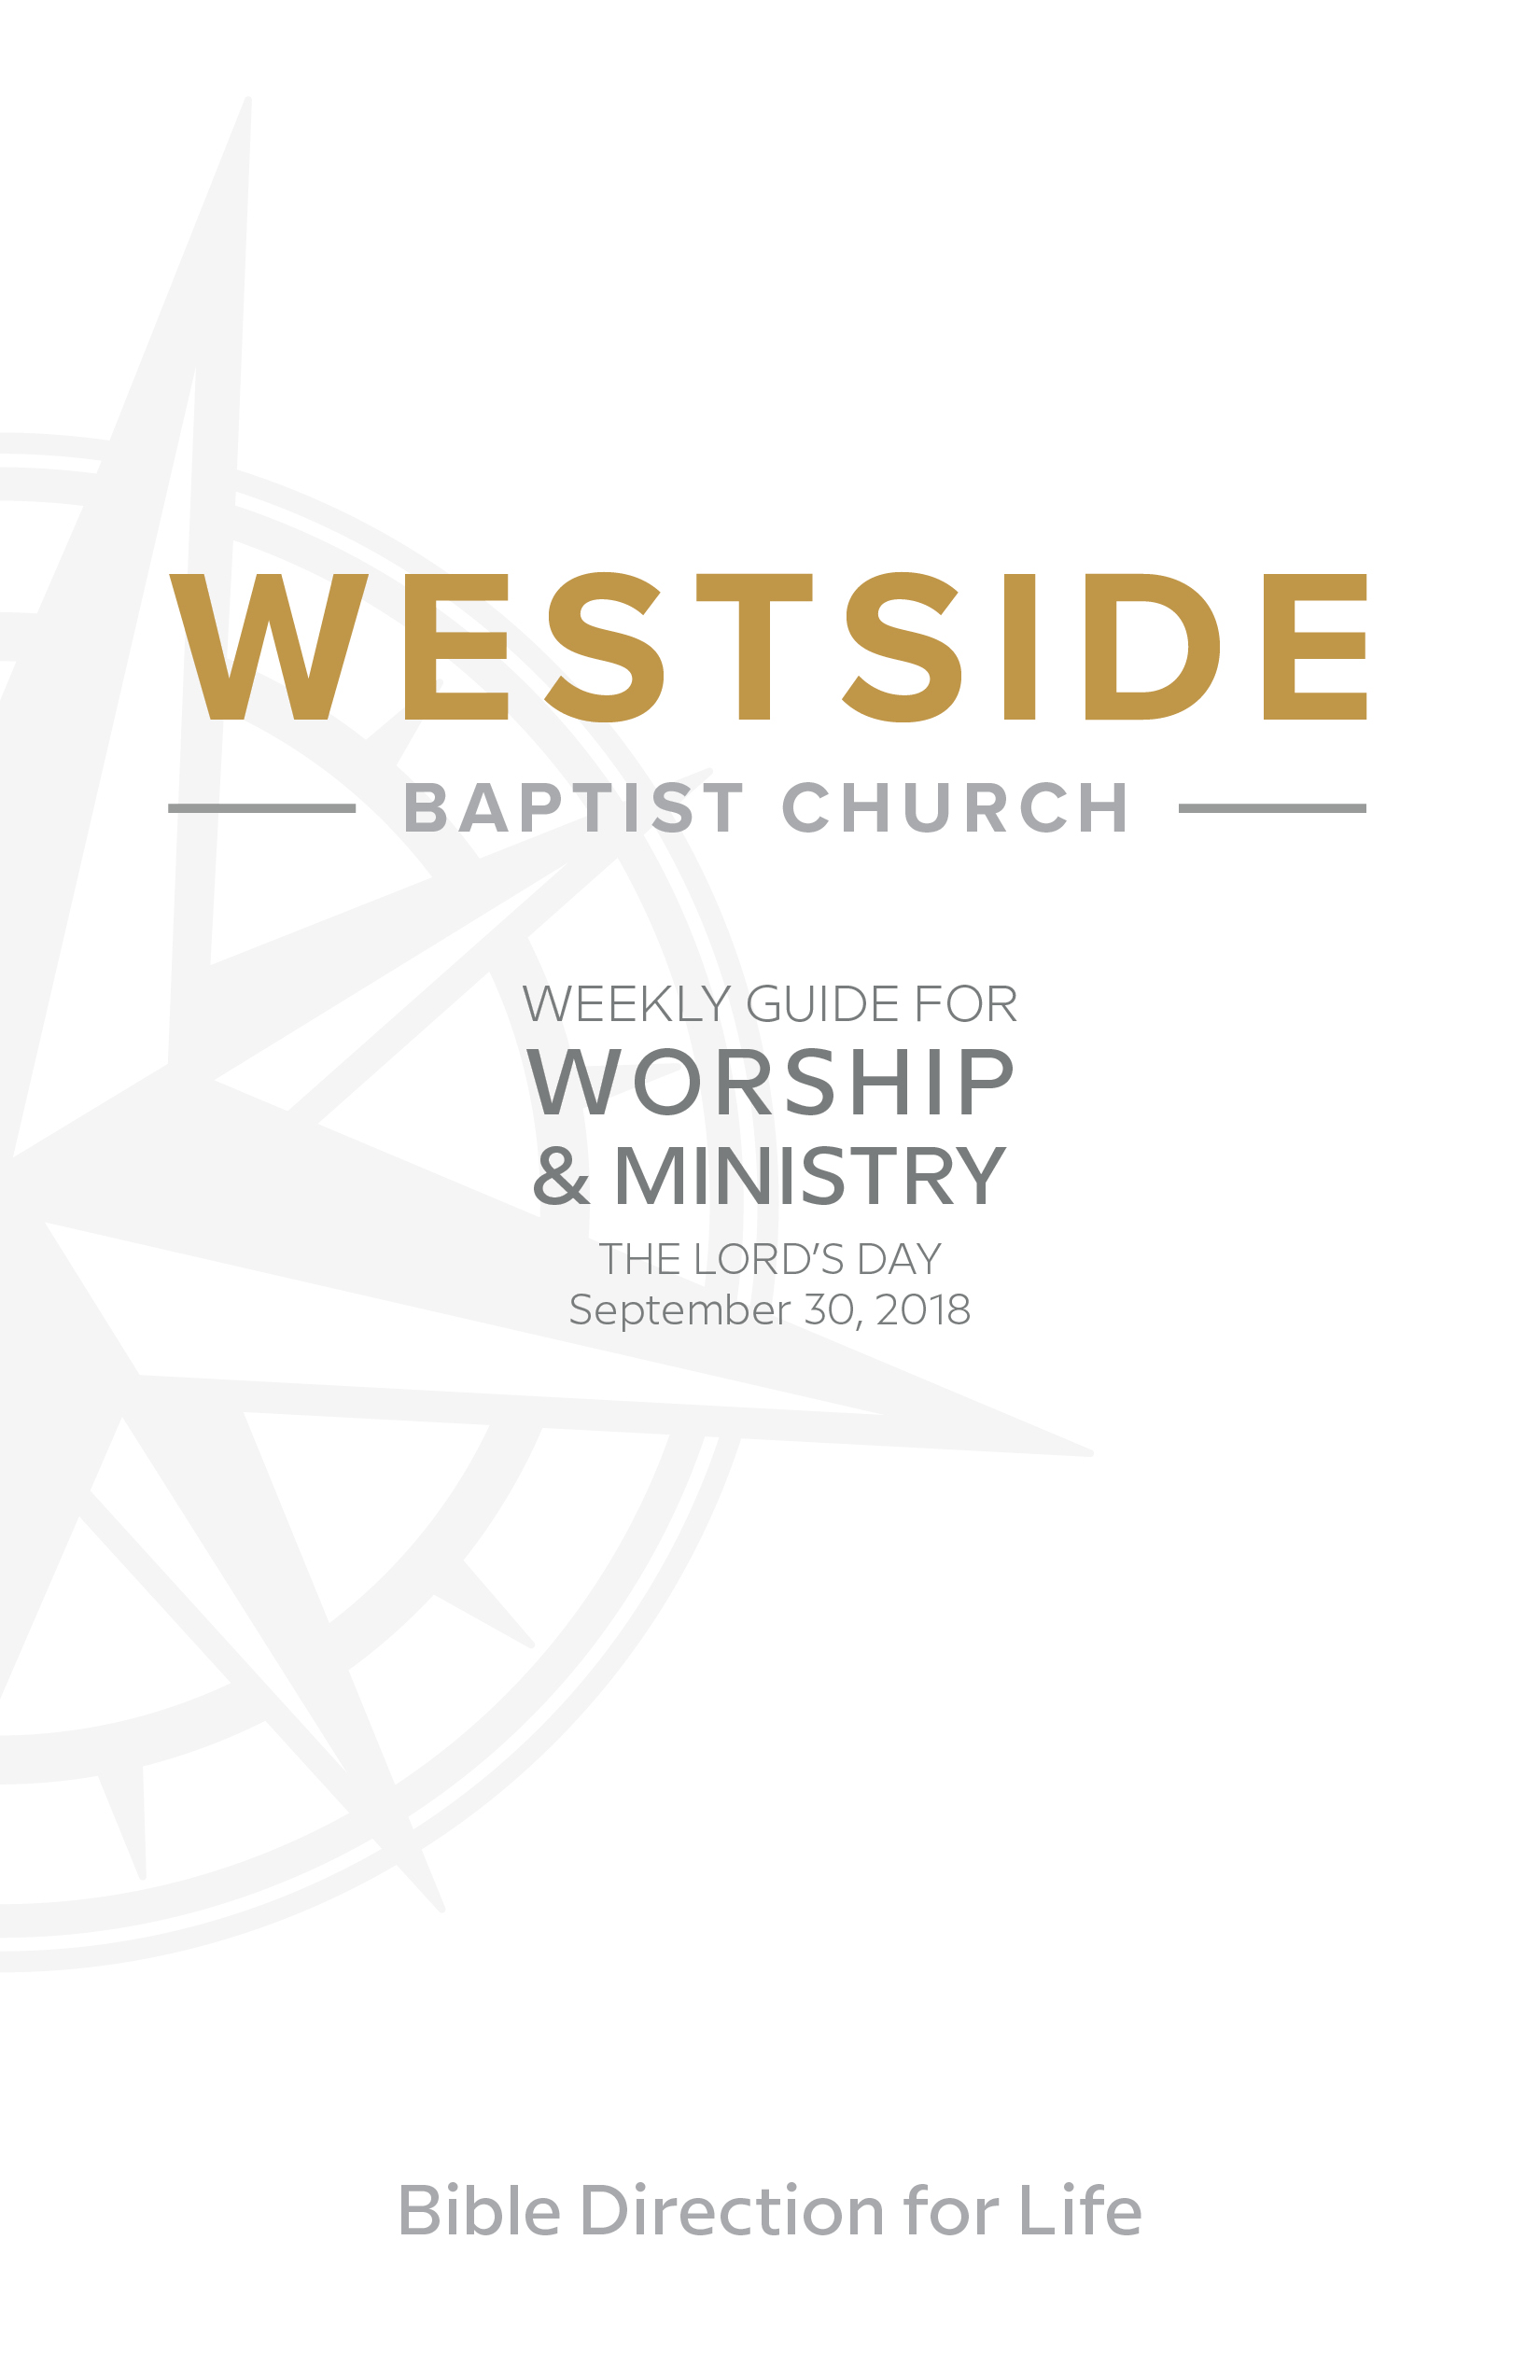 Weekly Guide for Worship and Ministry—September 30